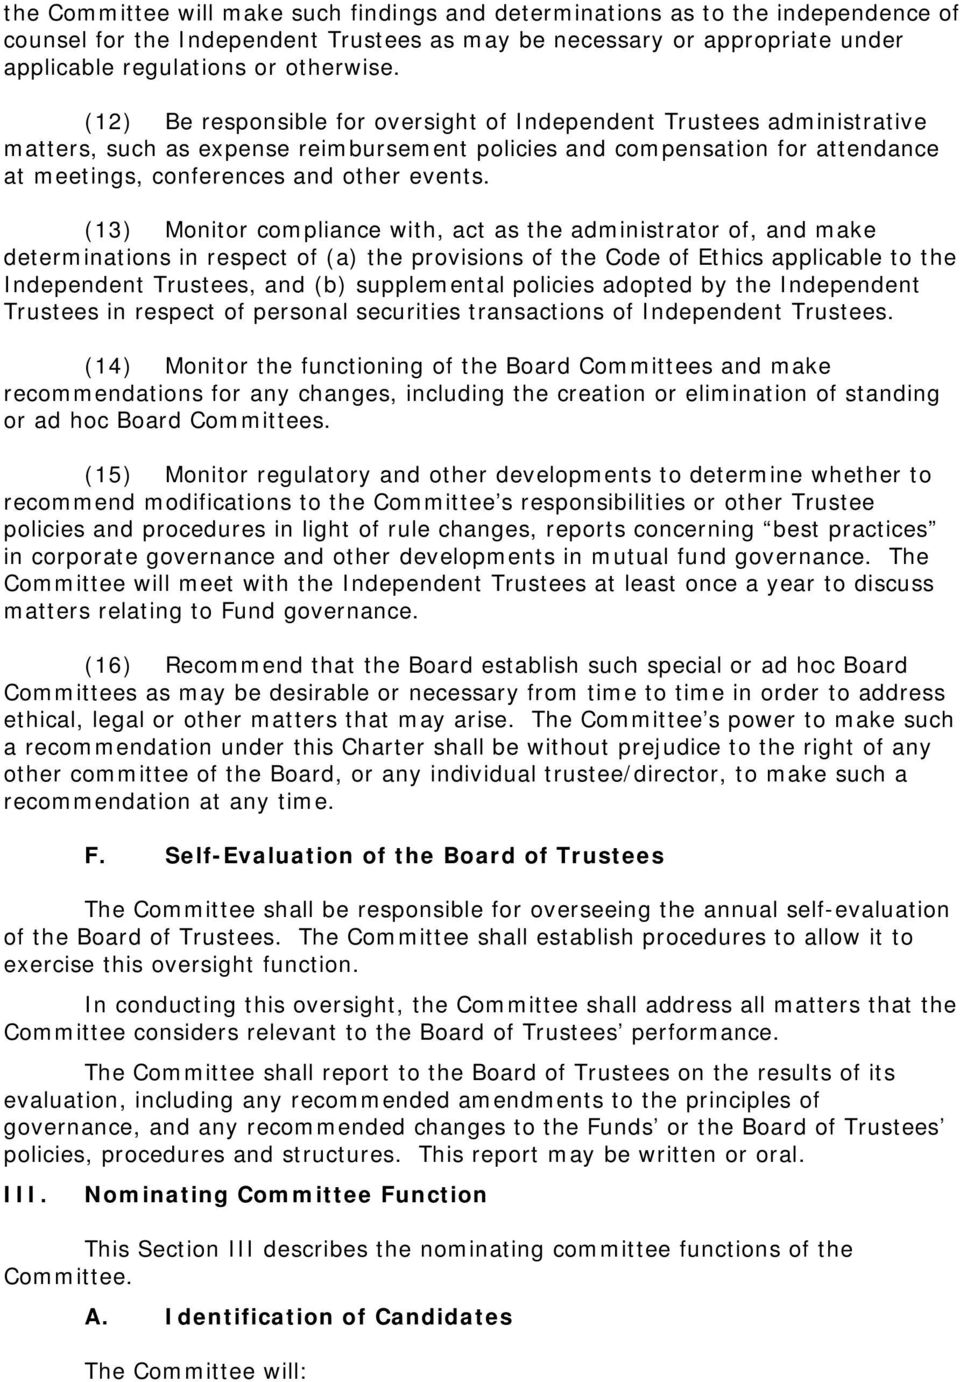 (13) Monitor compliance with, act as the administrator of, and make determinations in respect of (a) the provisions of the Code of Ethics applicable to the Independent Trustees, and (b) supplemental